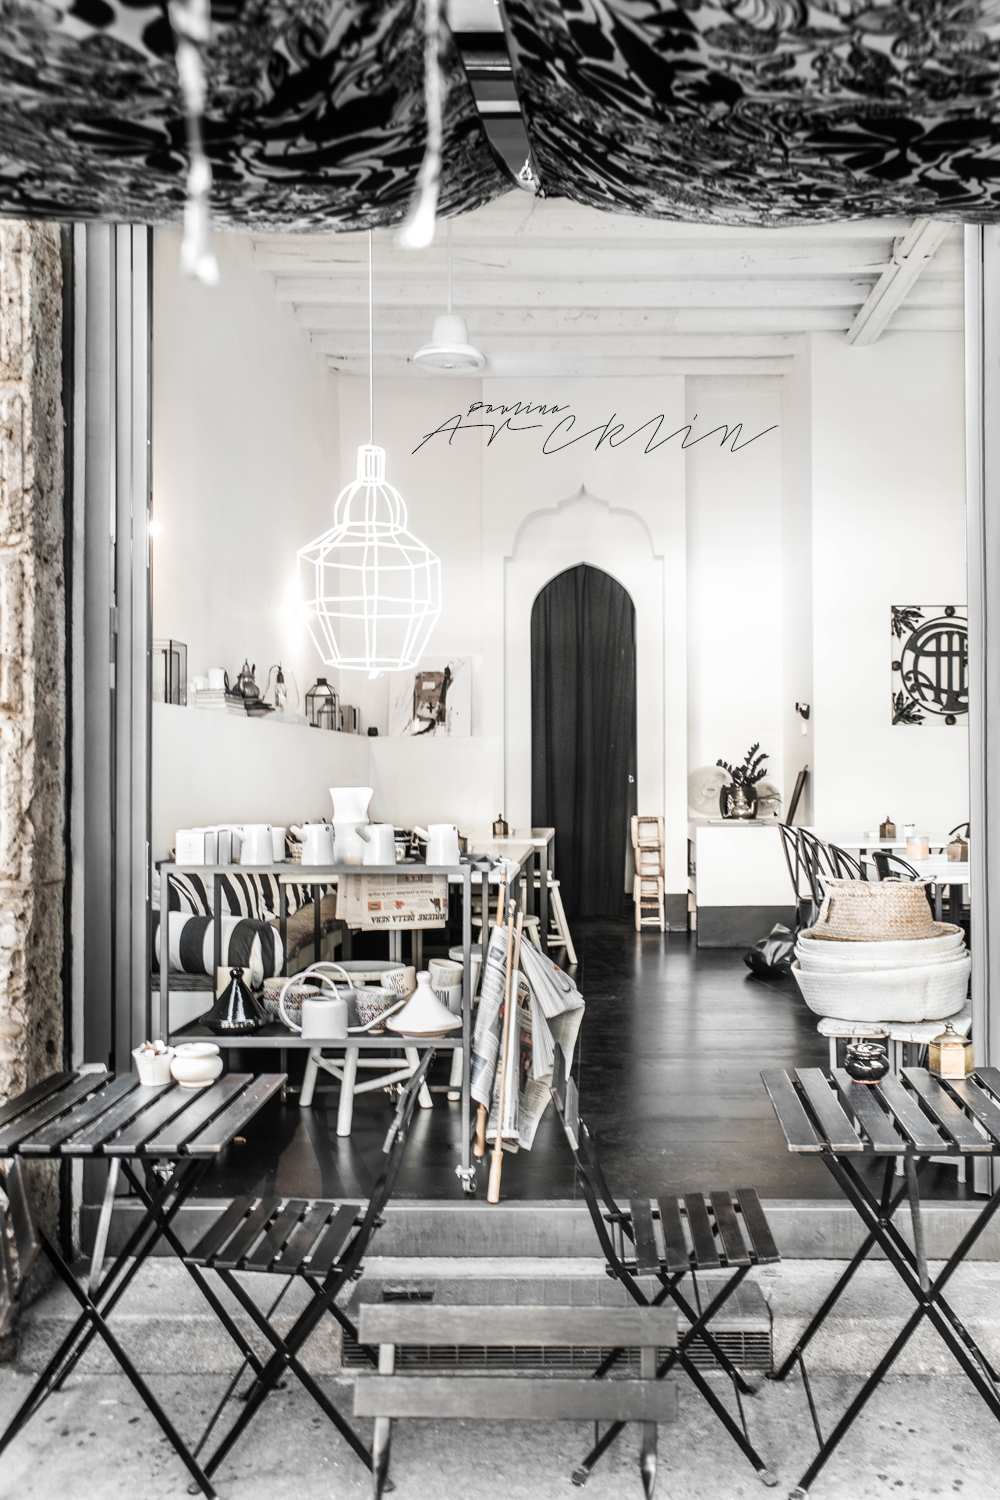 italian interiors design restaurant milan with ethnic scandi mood. Black Bedroom Furniture Sets. Home Design Ideas